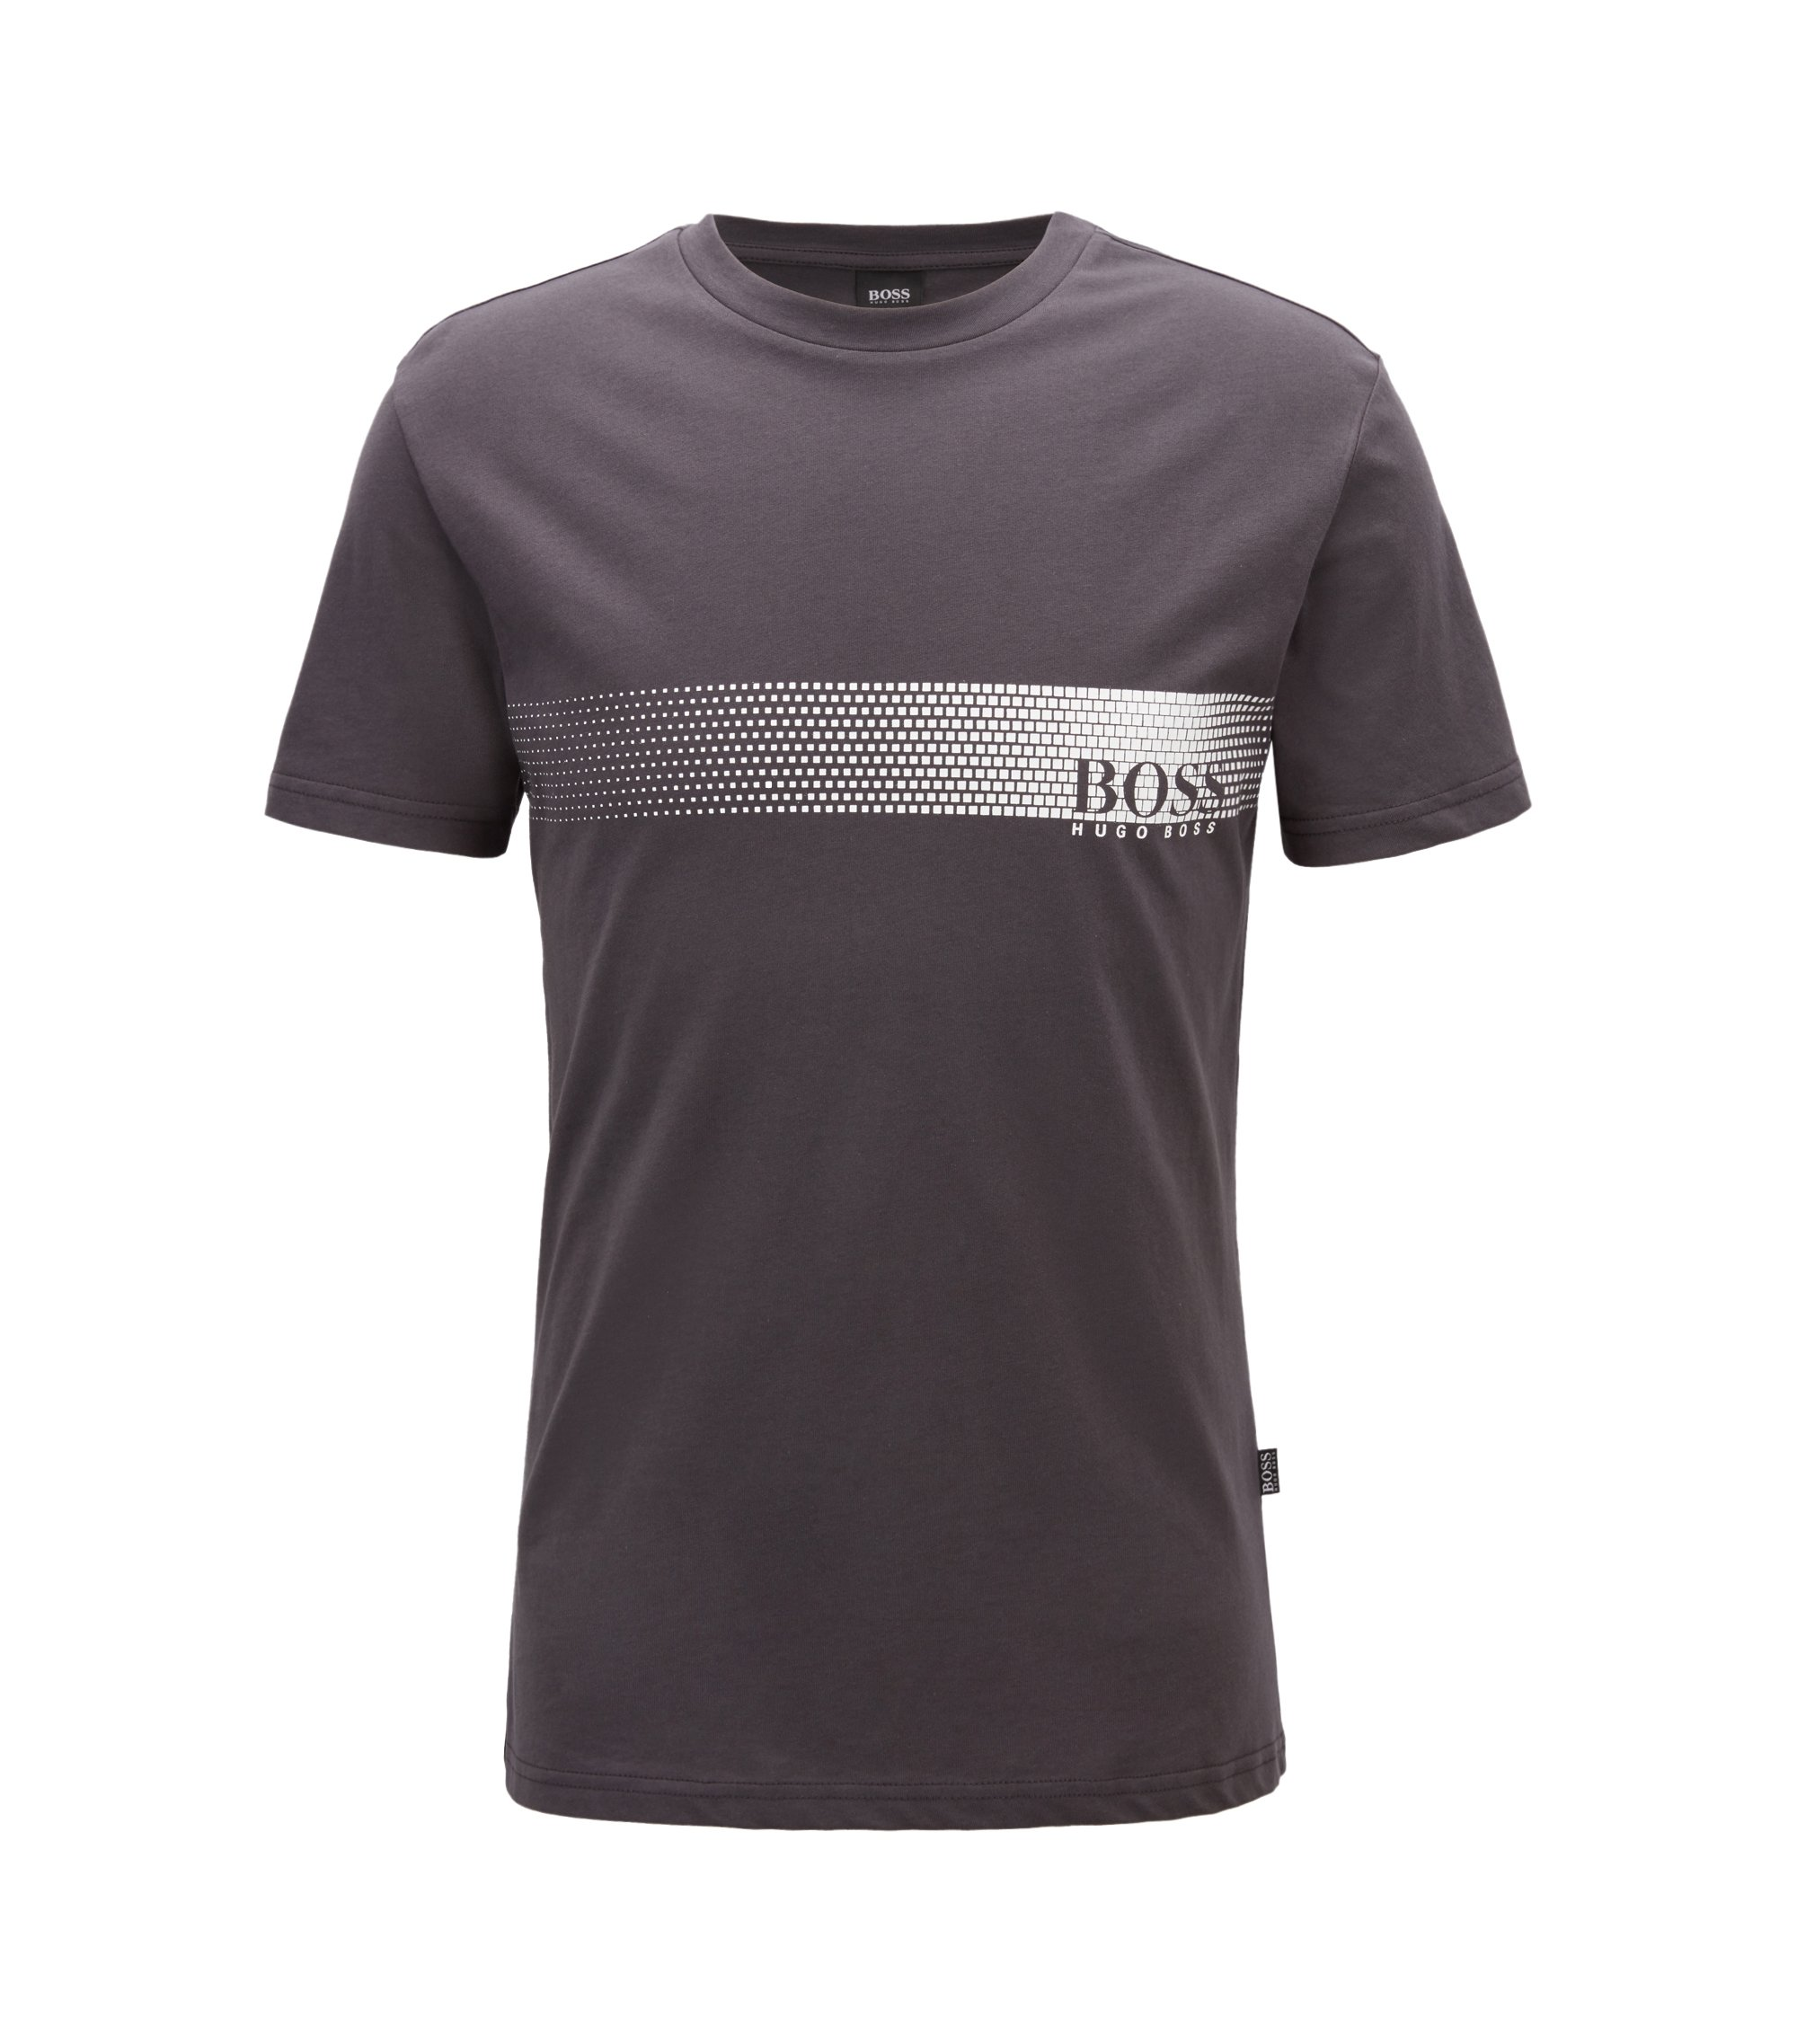 Sunsafe logo T-shirt in cotton, Anthracite